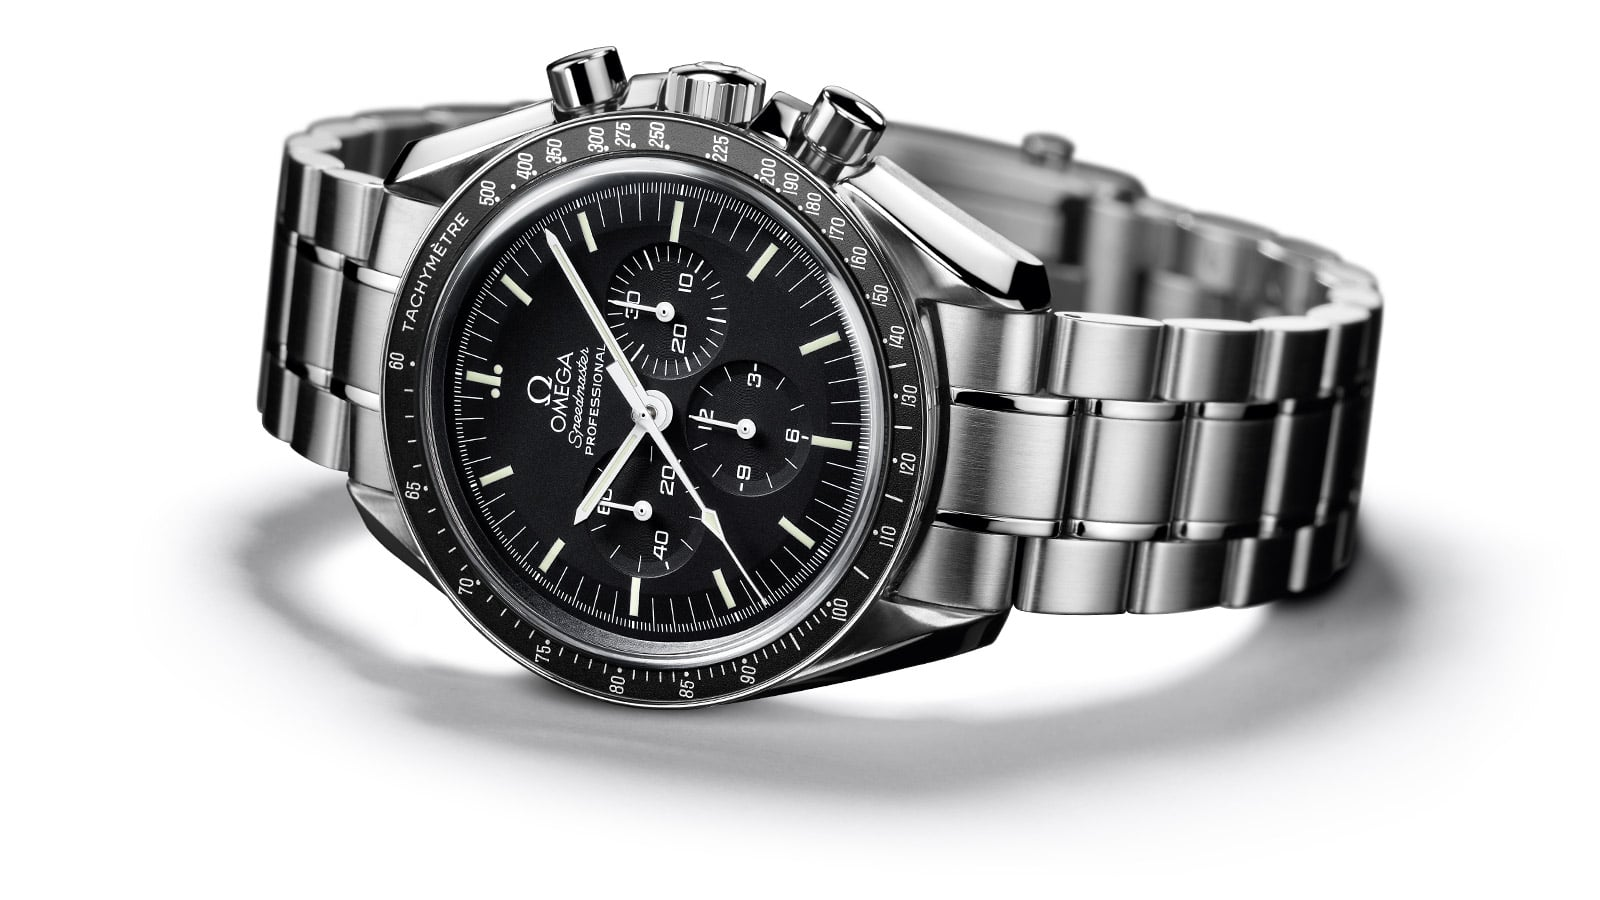 mm watch professional speedmaster watches soldier omega moonwatch chronograph